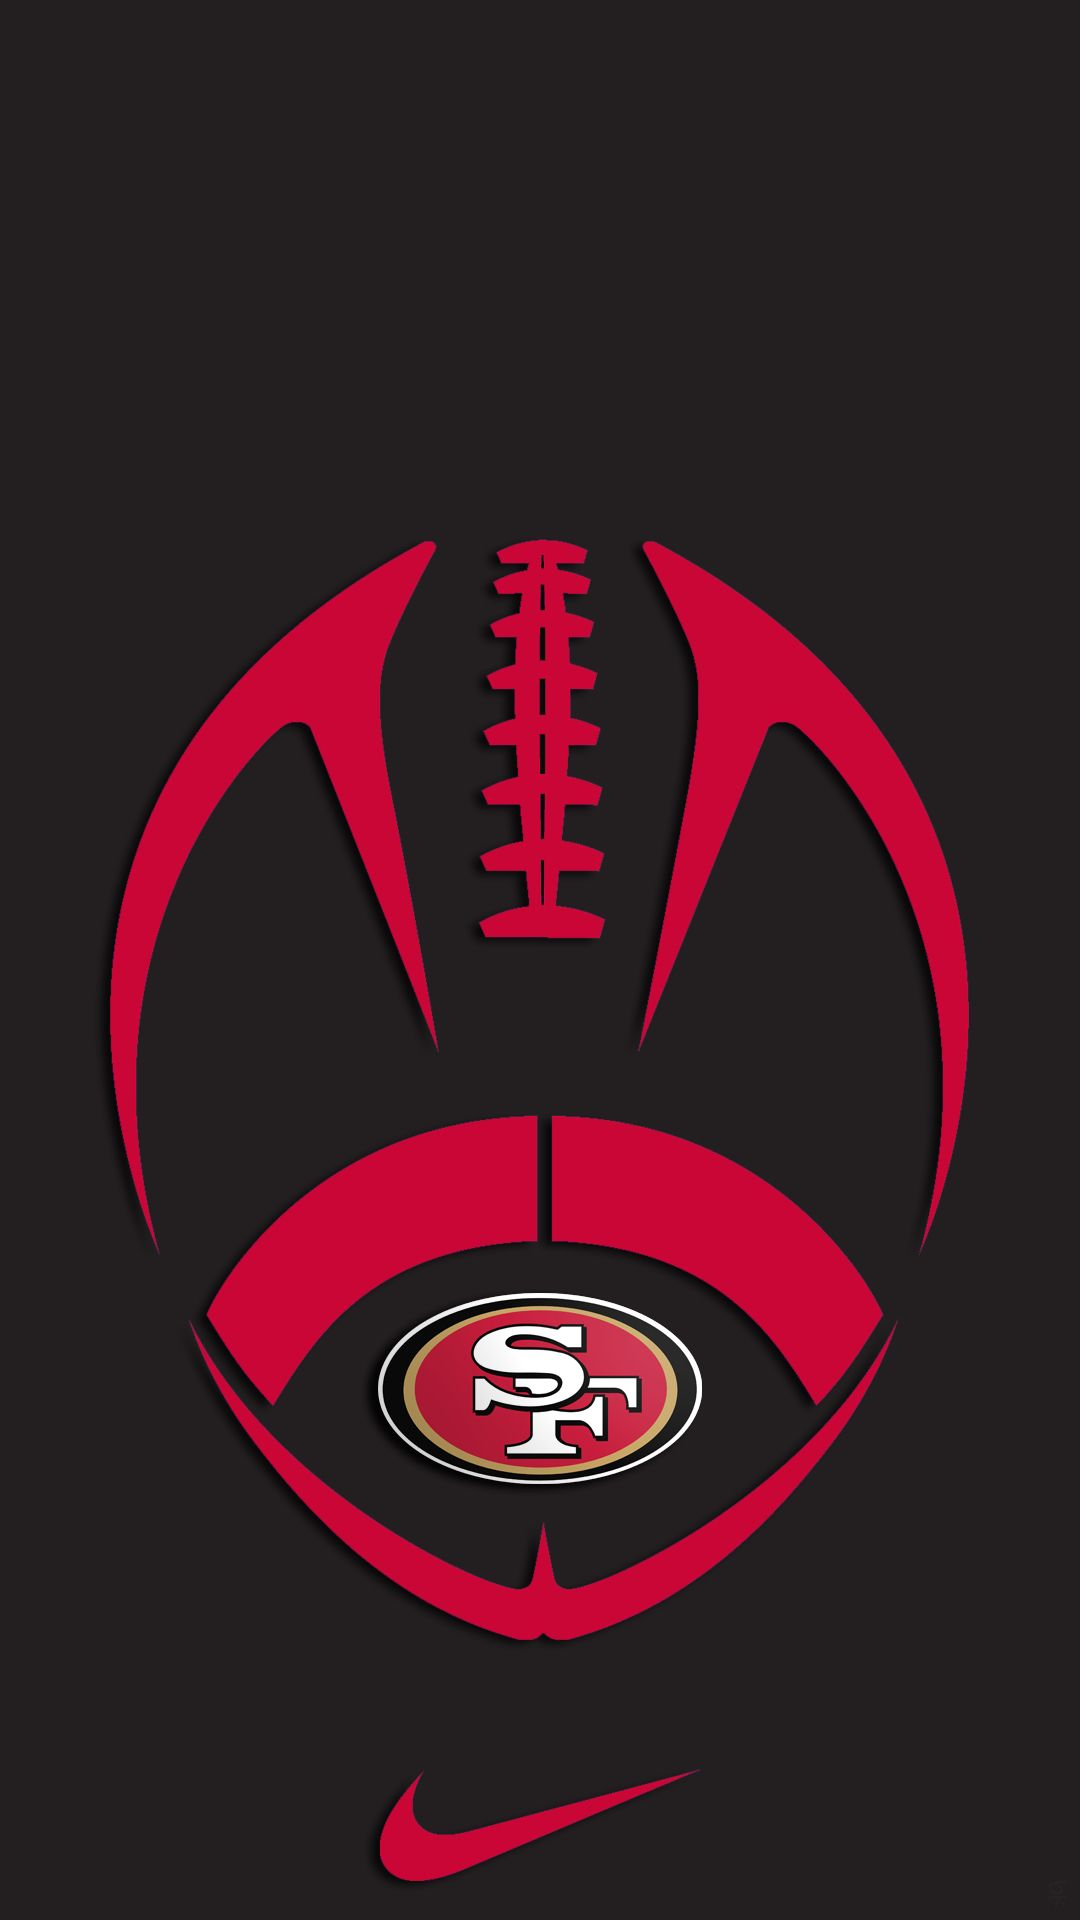 Next year (With images) 49ers, San francisco 49ers, Nfl